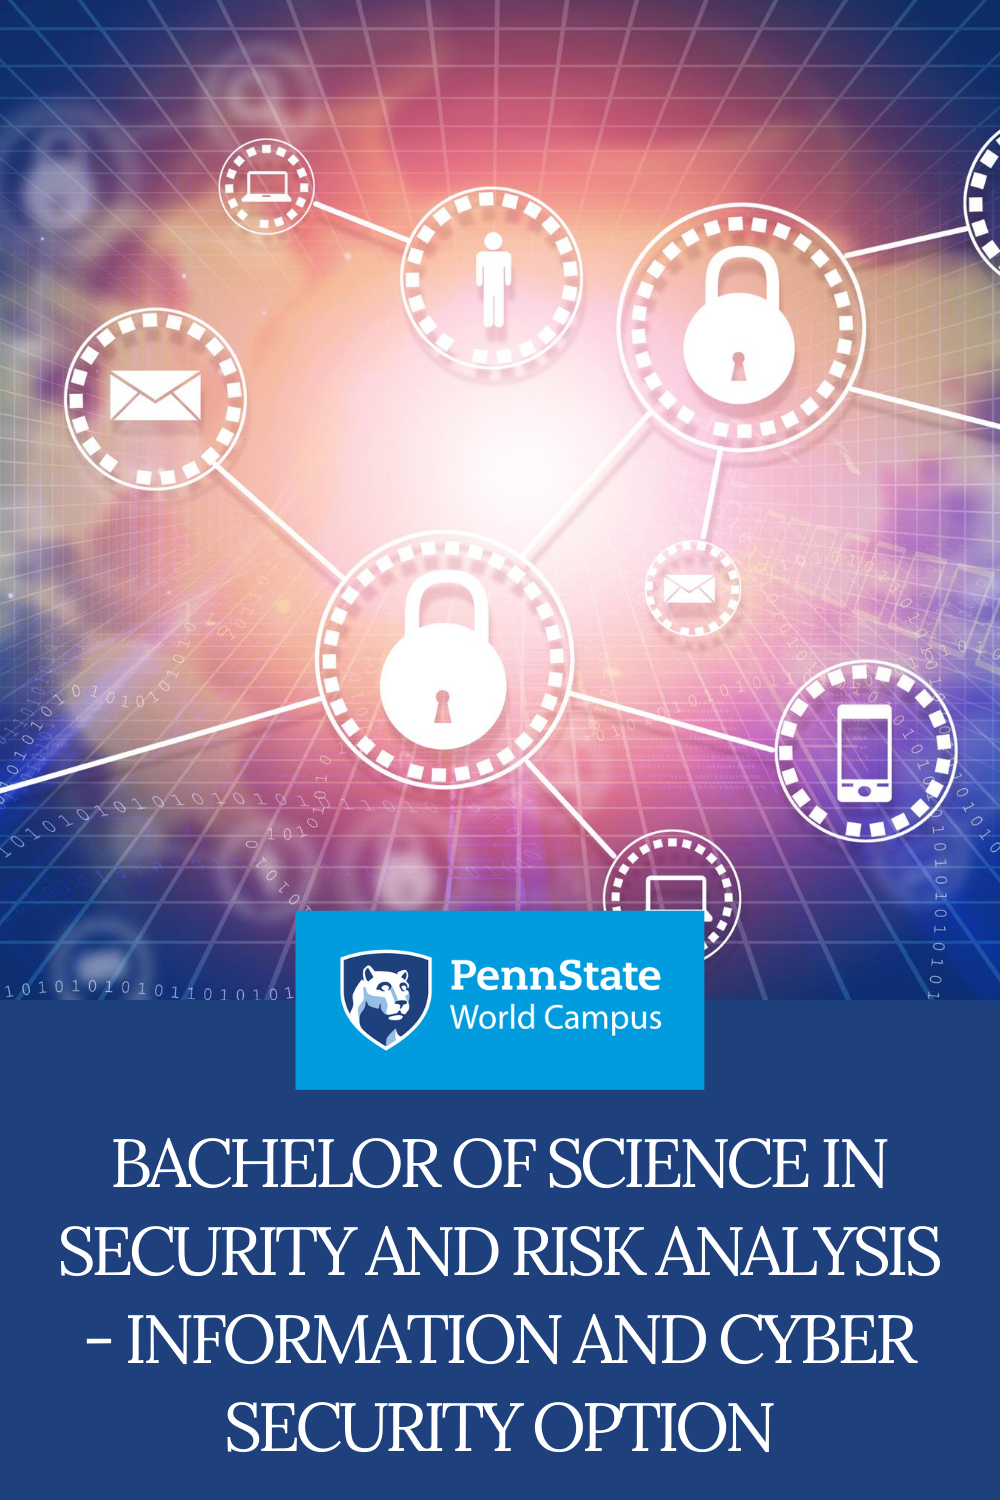 Bachelor Of Science In Security And Risk Analysis Information And Cyber Security Option Risk Analysis Penn State Analysis